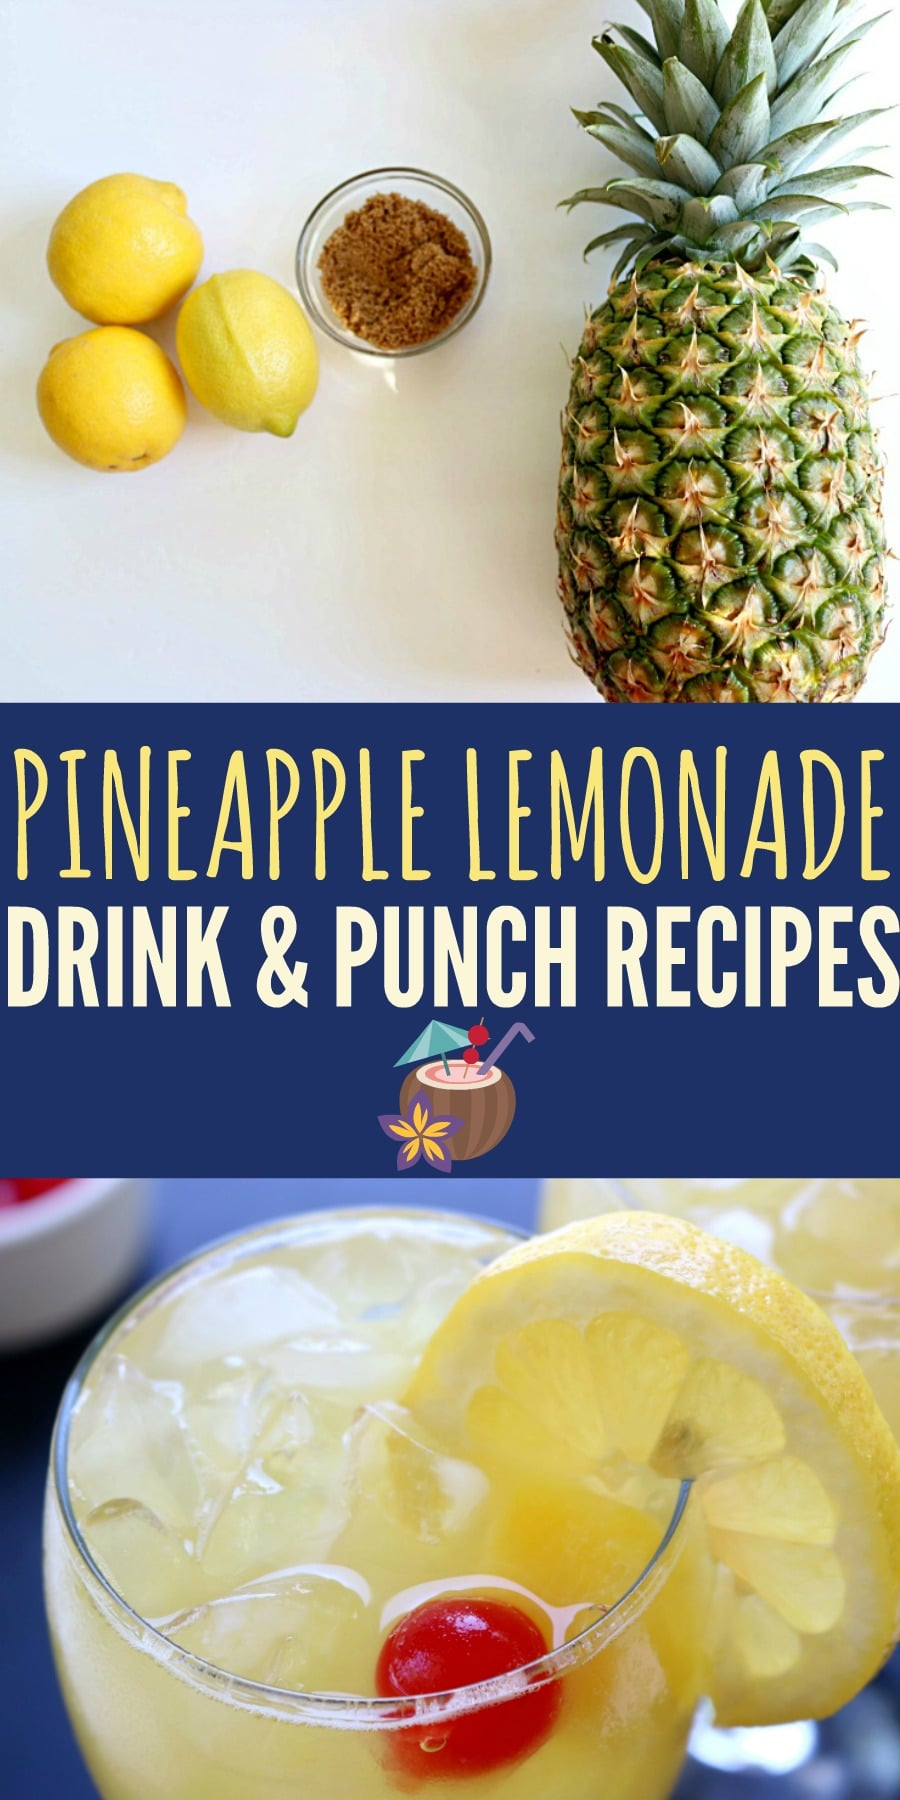 Pineapple Lemonade Drink and Punch Recipes